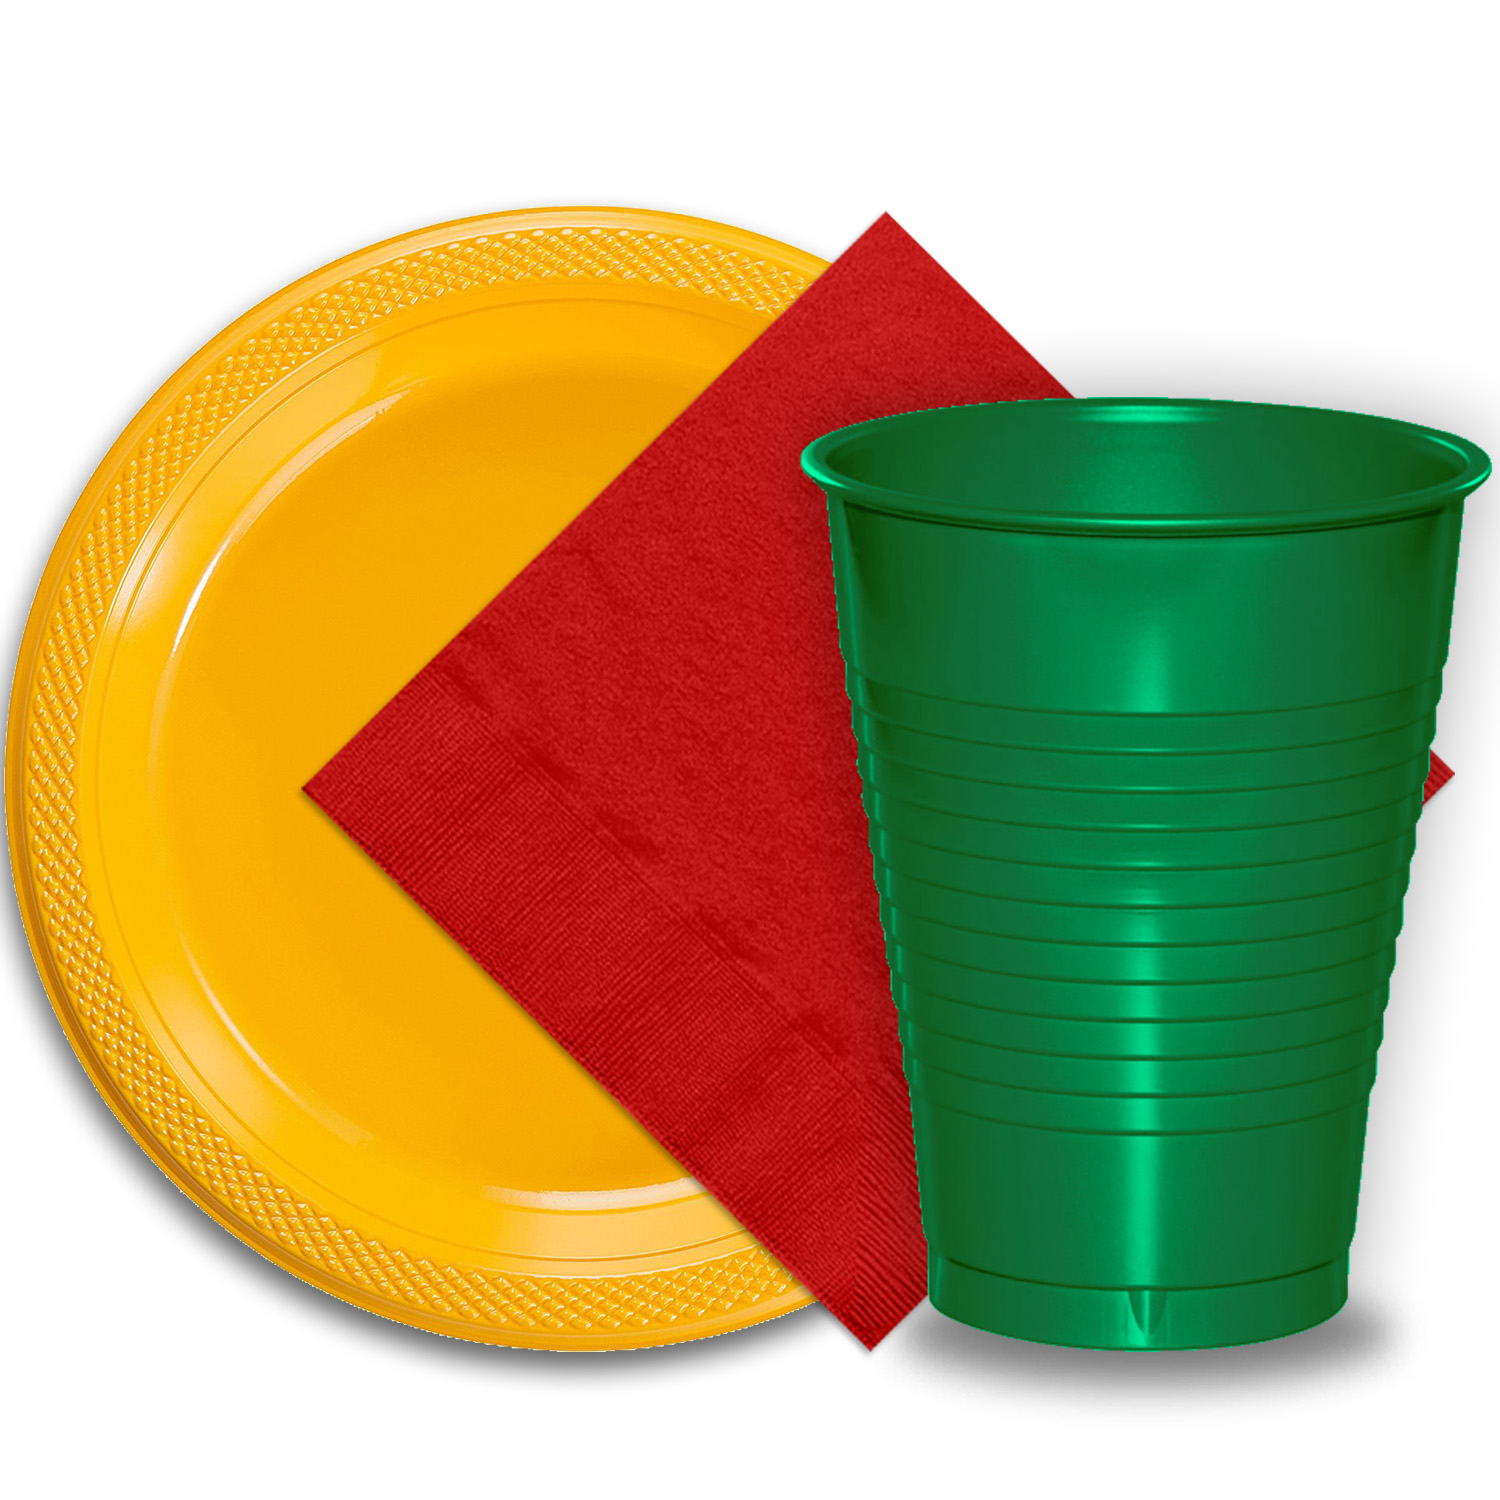 """50 Yellow Plastic Plates (9""""), 50 Emerald Green Plastic Cups (12 oz.), and 50 Red Paper Napkins, Dazzelling Colored Disposable Party Supplies Tableware Set for Fifty Guests."""